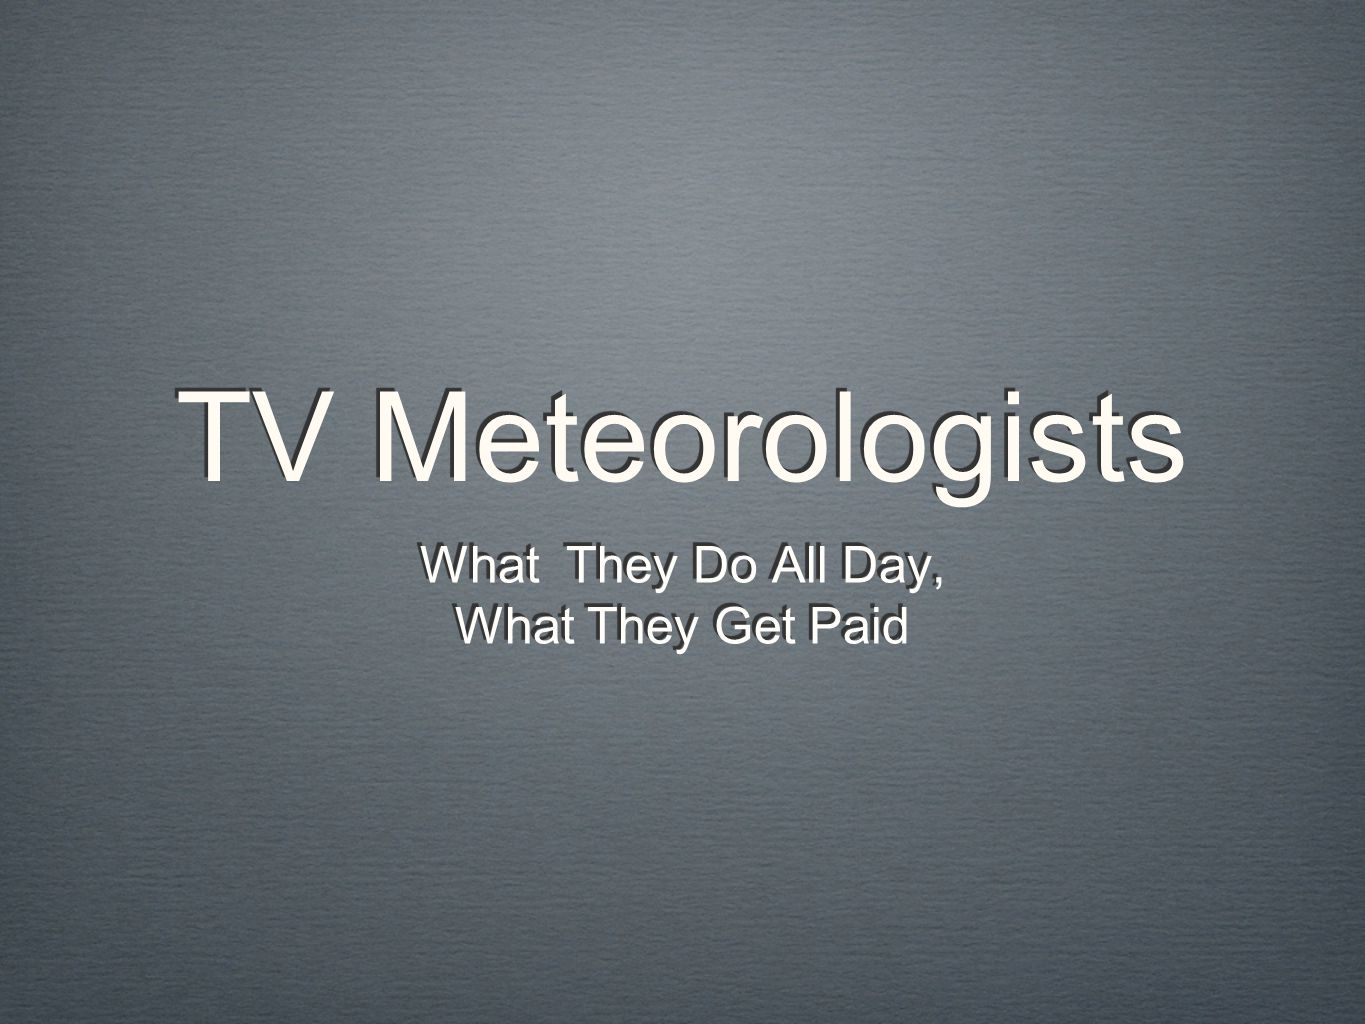 TV Meteorologists What They Do All Day, What They Get Paid